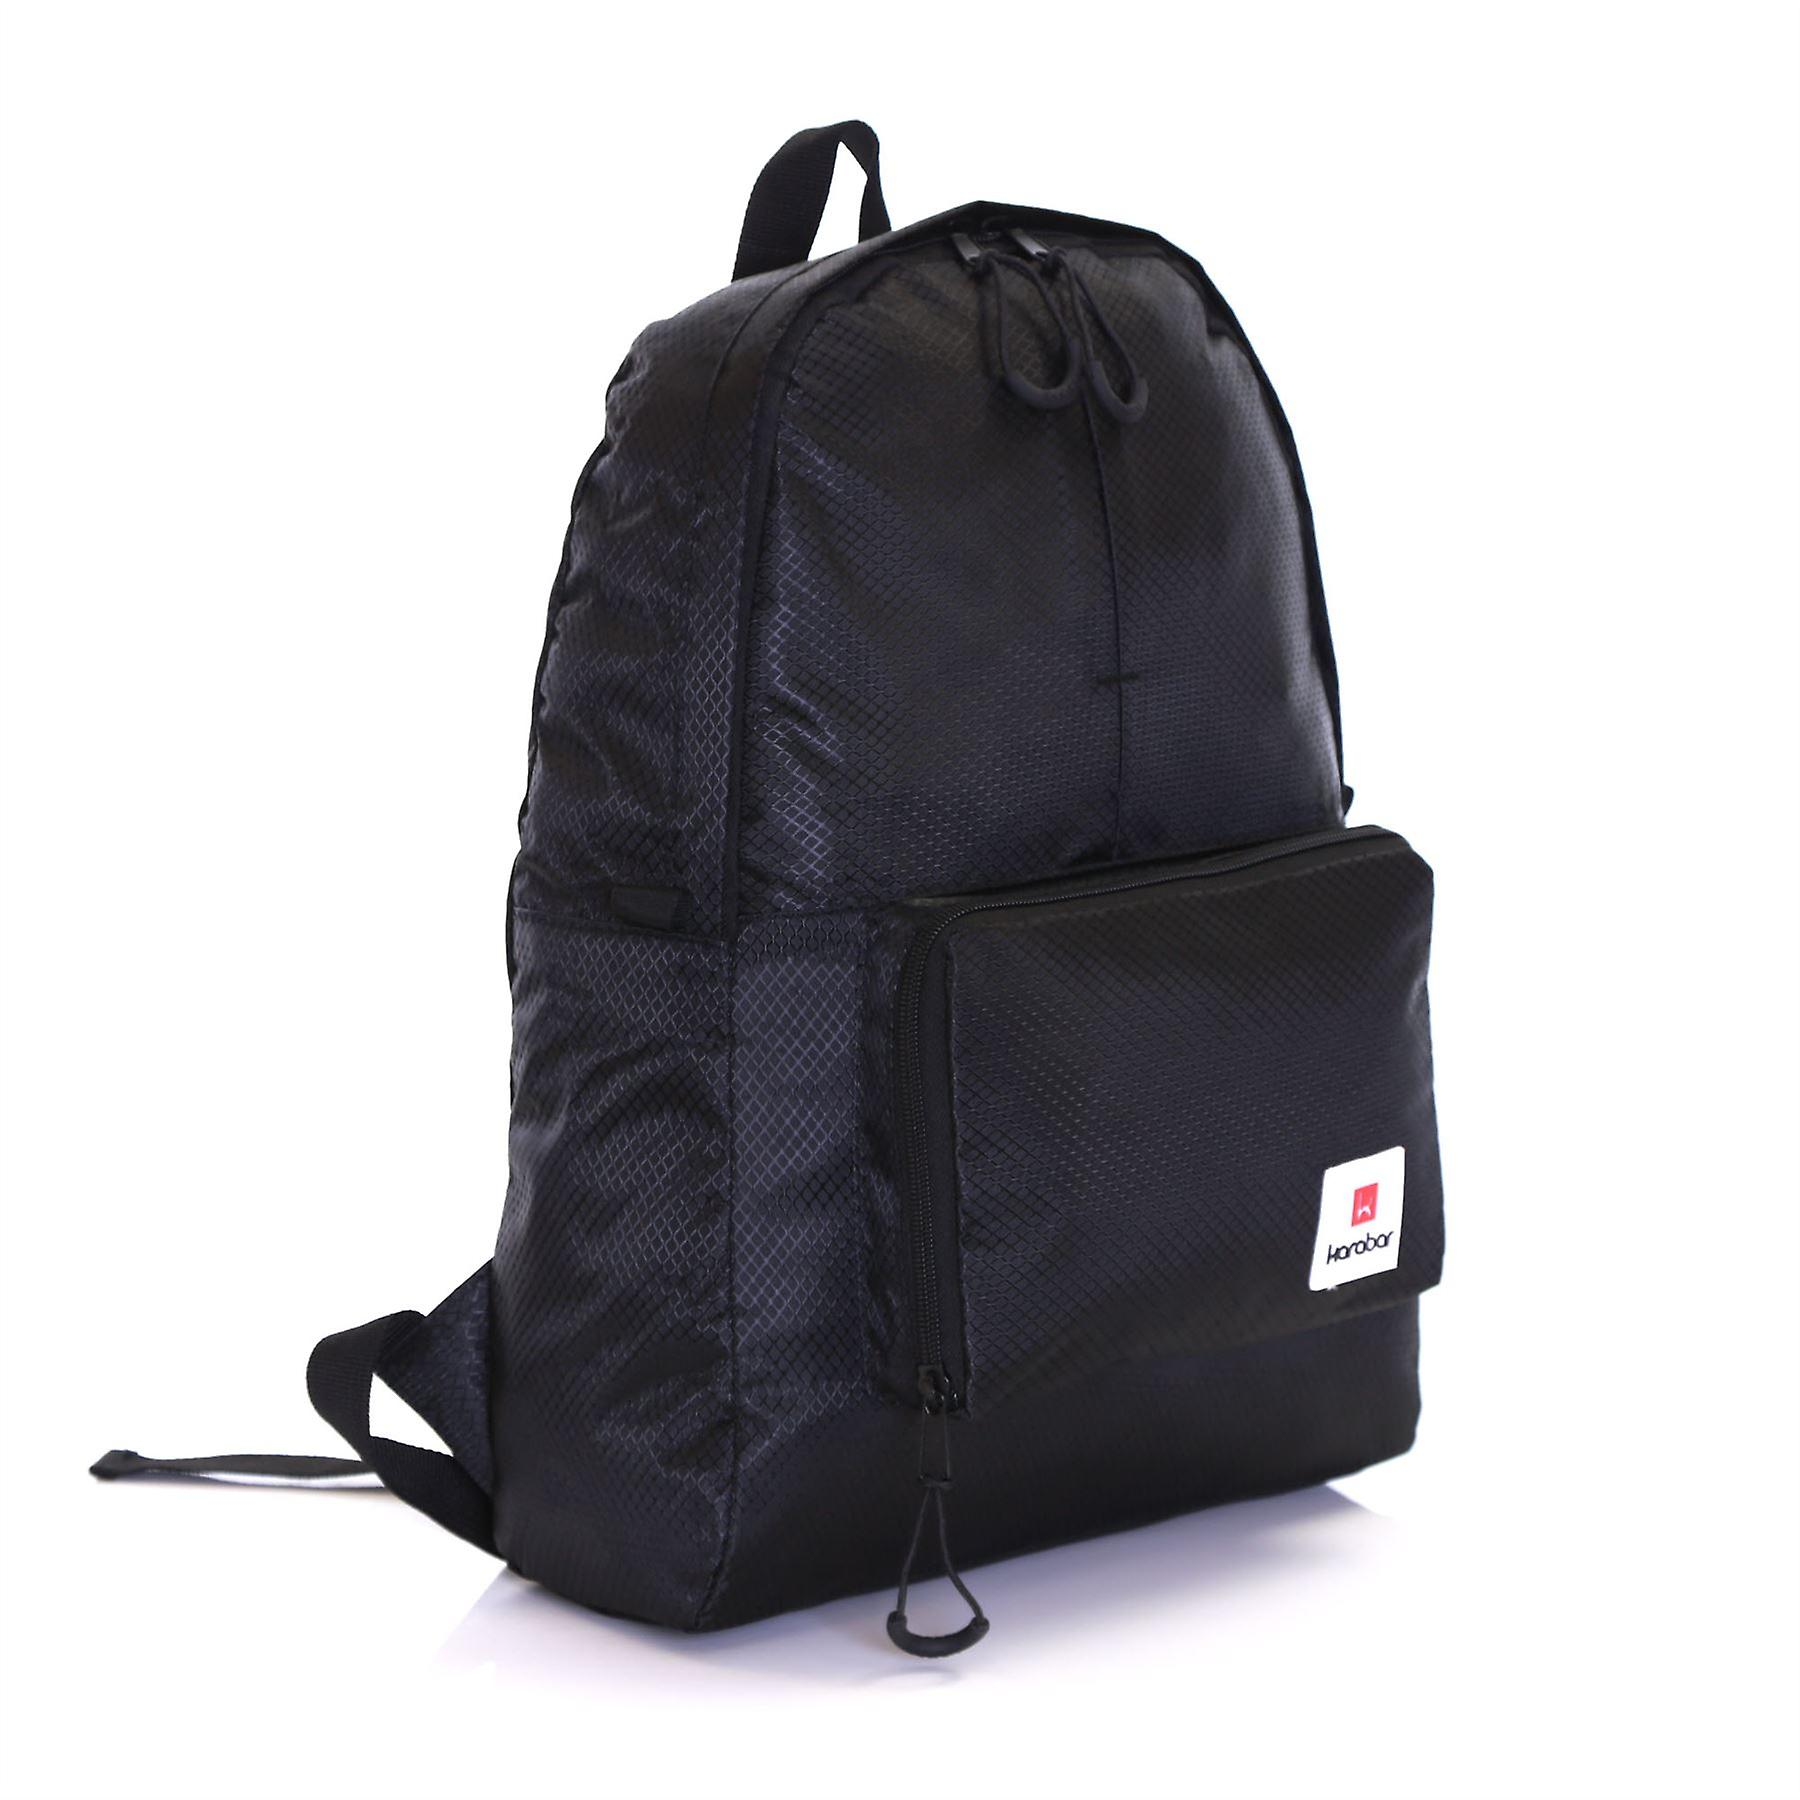 Karabar Sintra 15 Litre Foldable Backpack, Ink Black